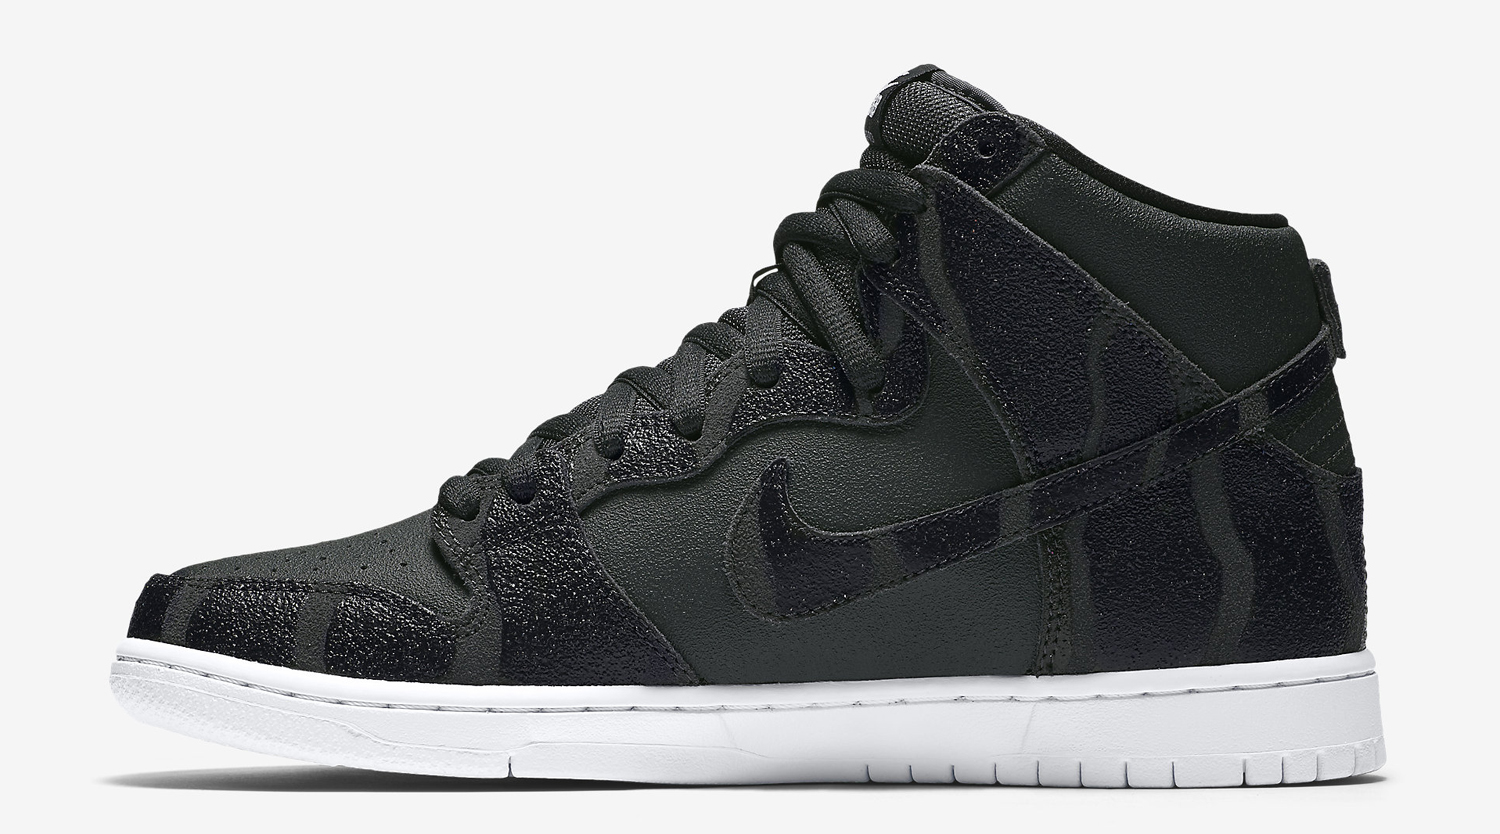 new product 77322 4ccd0 Nike Puts Griptape on Skateboarding Sneakers. The SB Dunk High ...